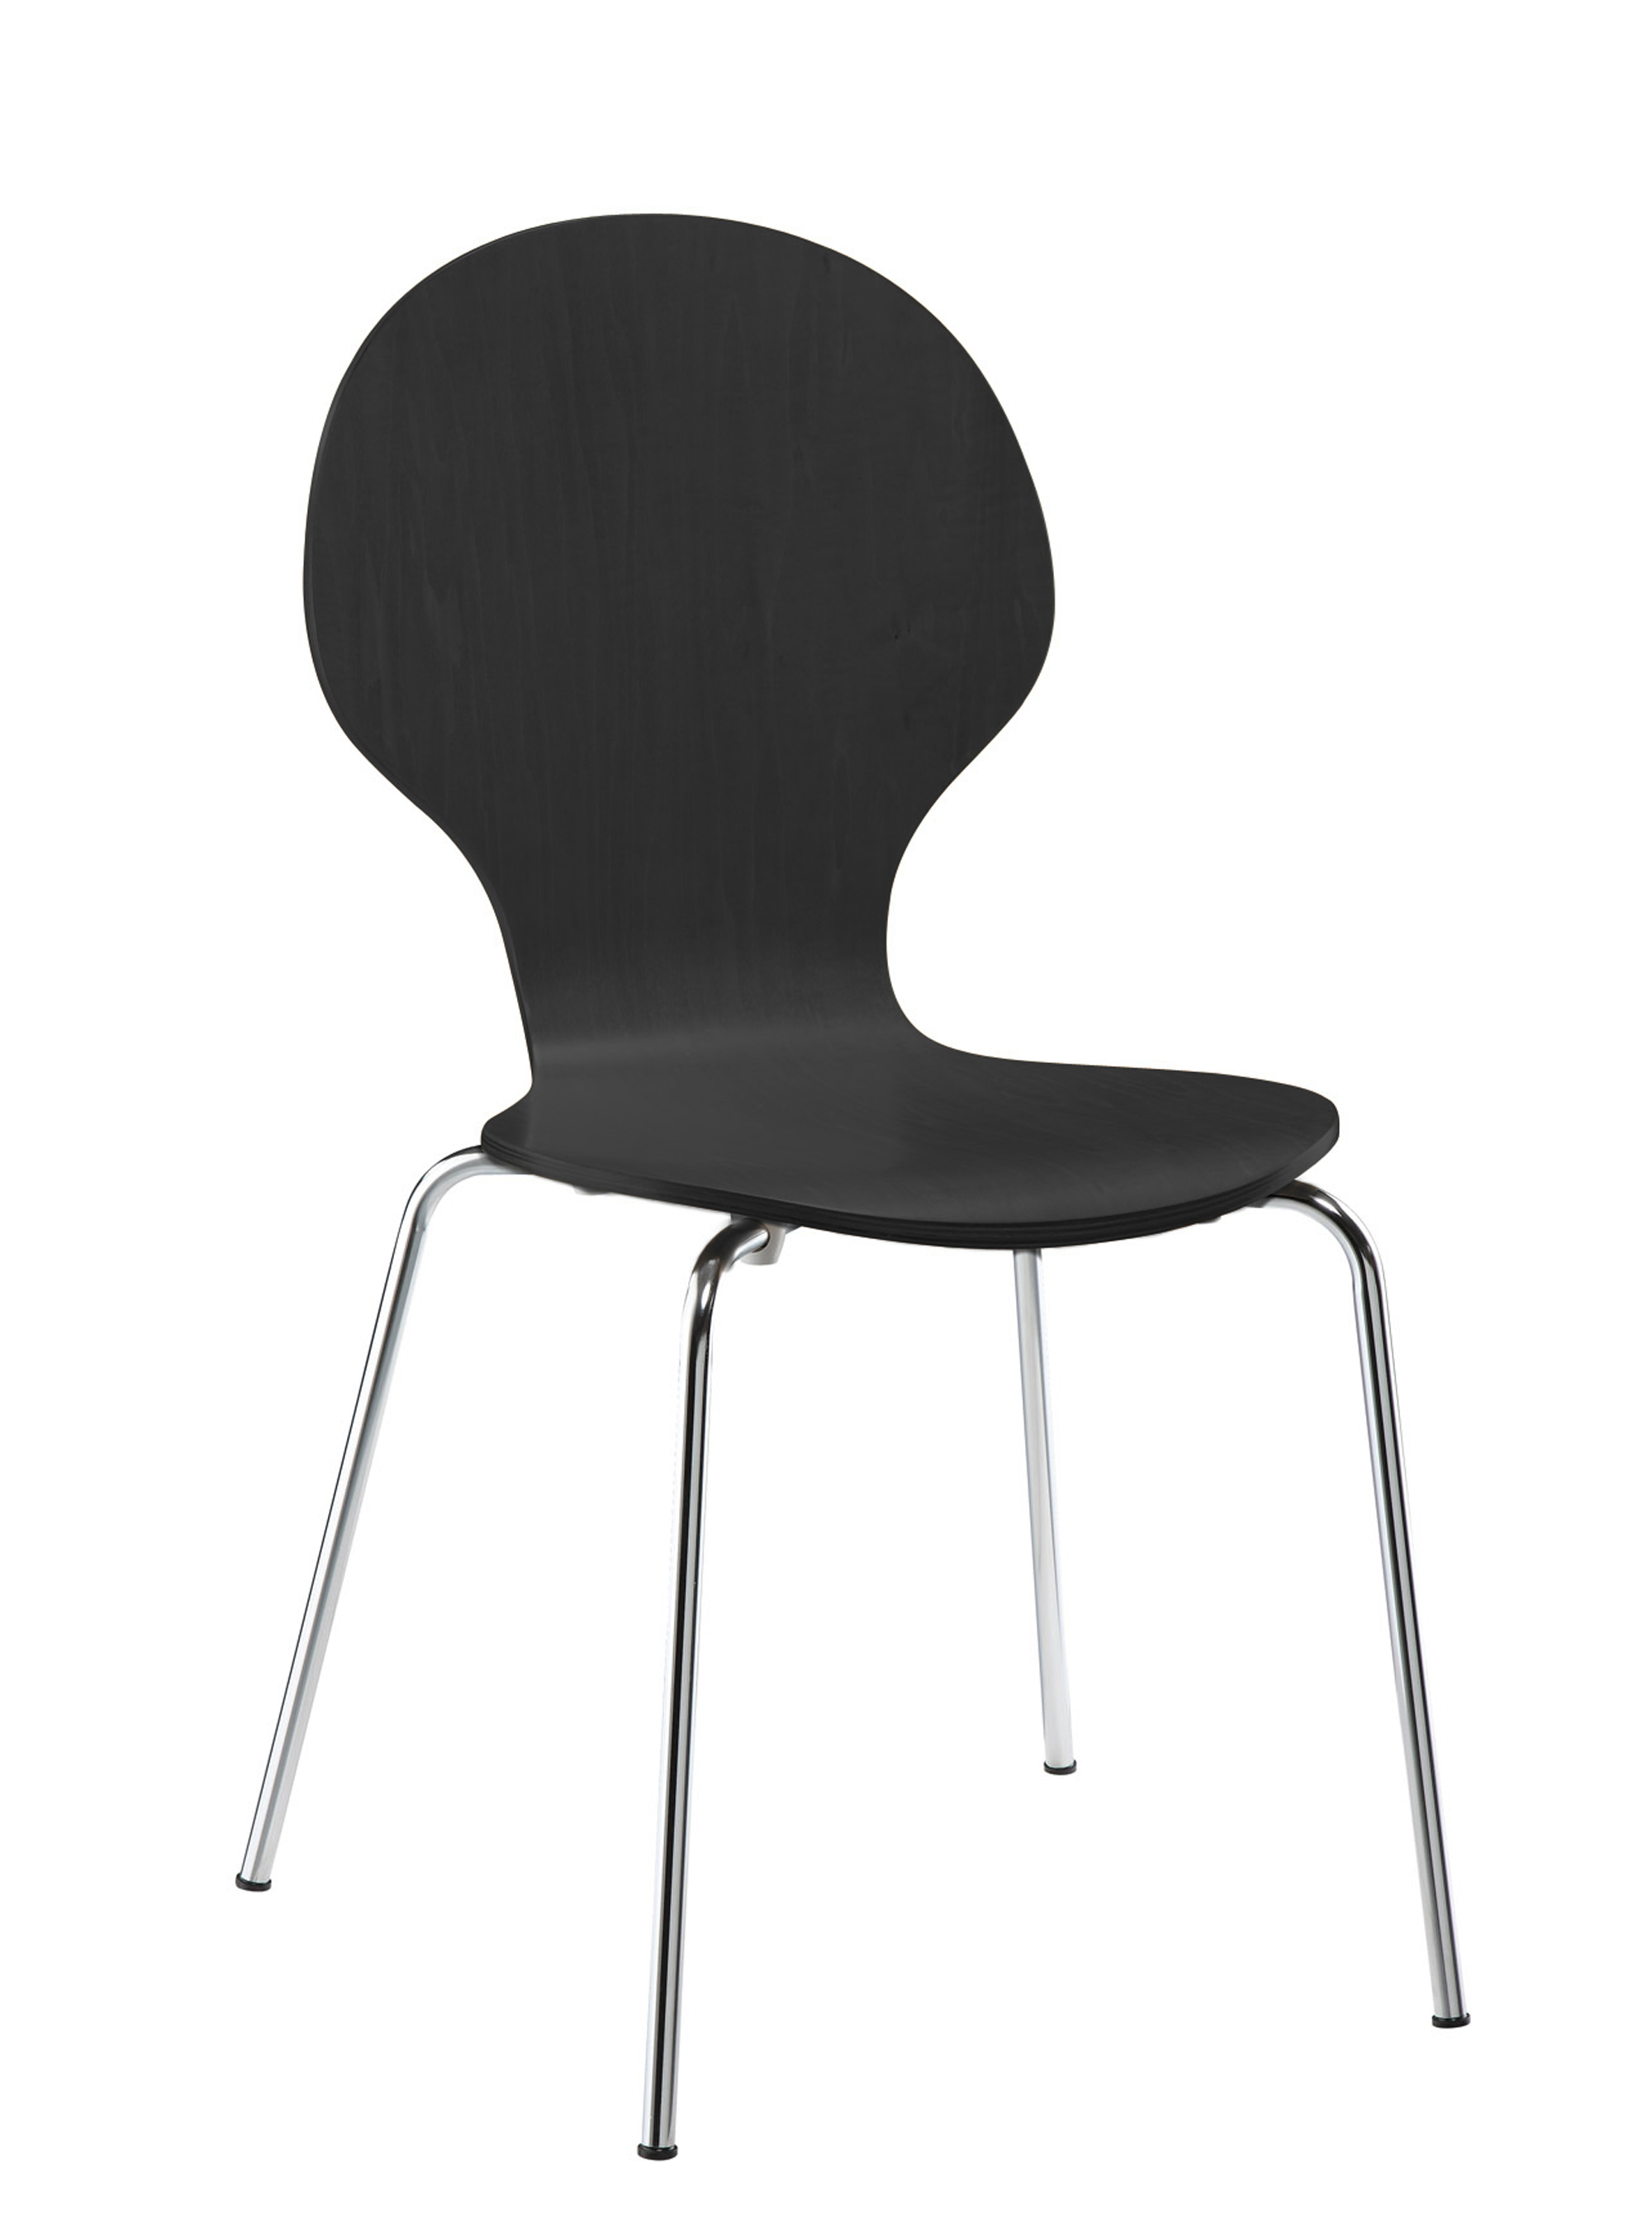 dining chair booster seat kmart aluminum folding lawn spin prod 1154445912 hei333 andwid333 andop sharpen1